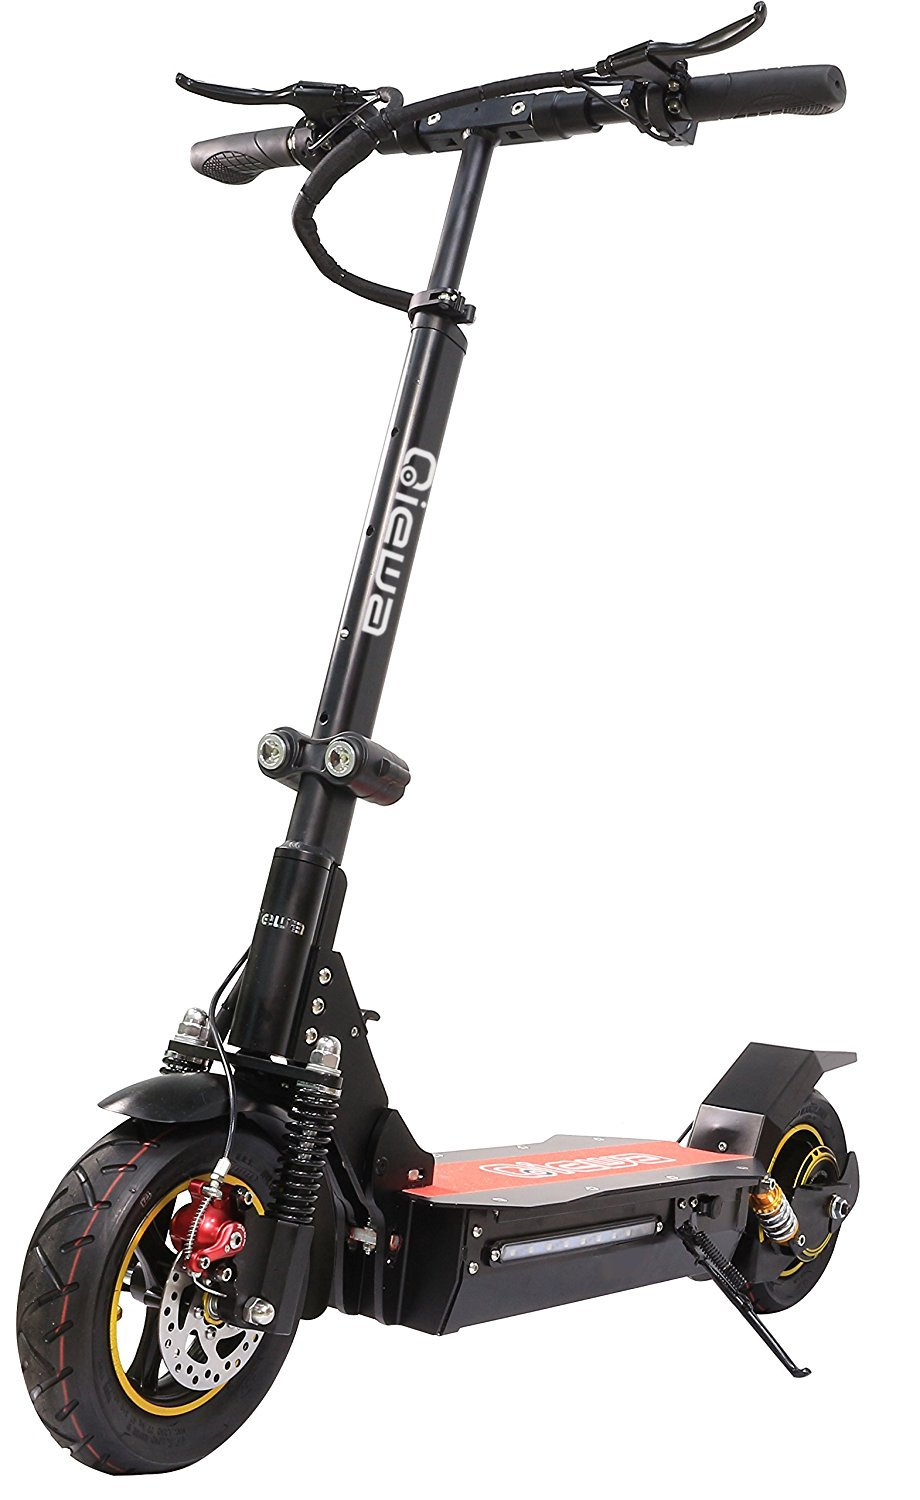 QIEWA Q1Hummer Electric Scooter